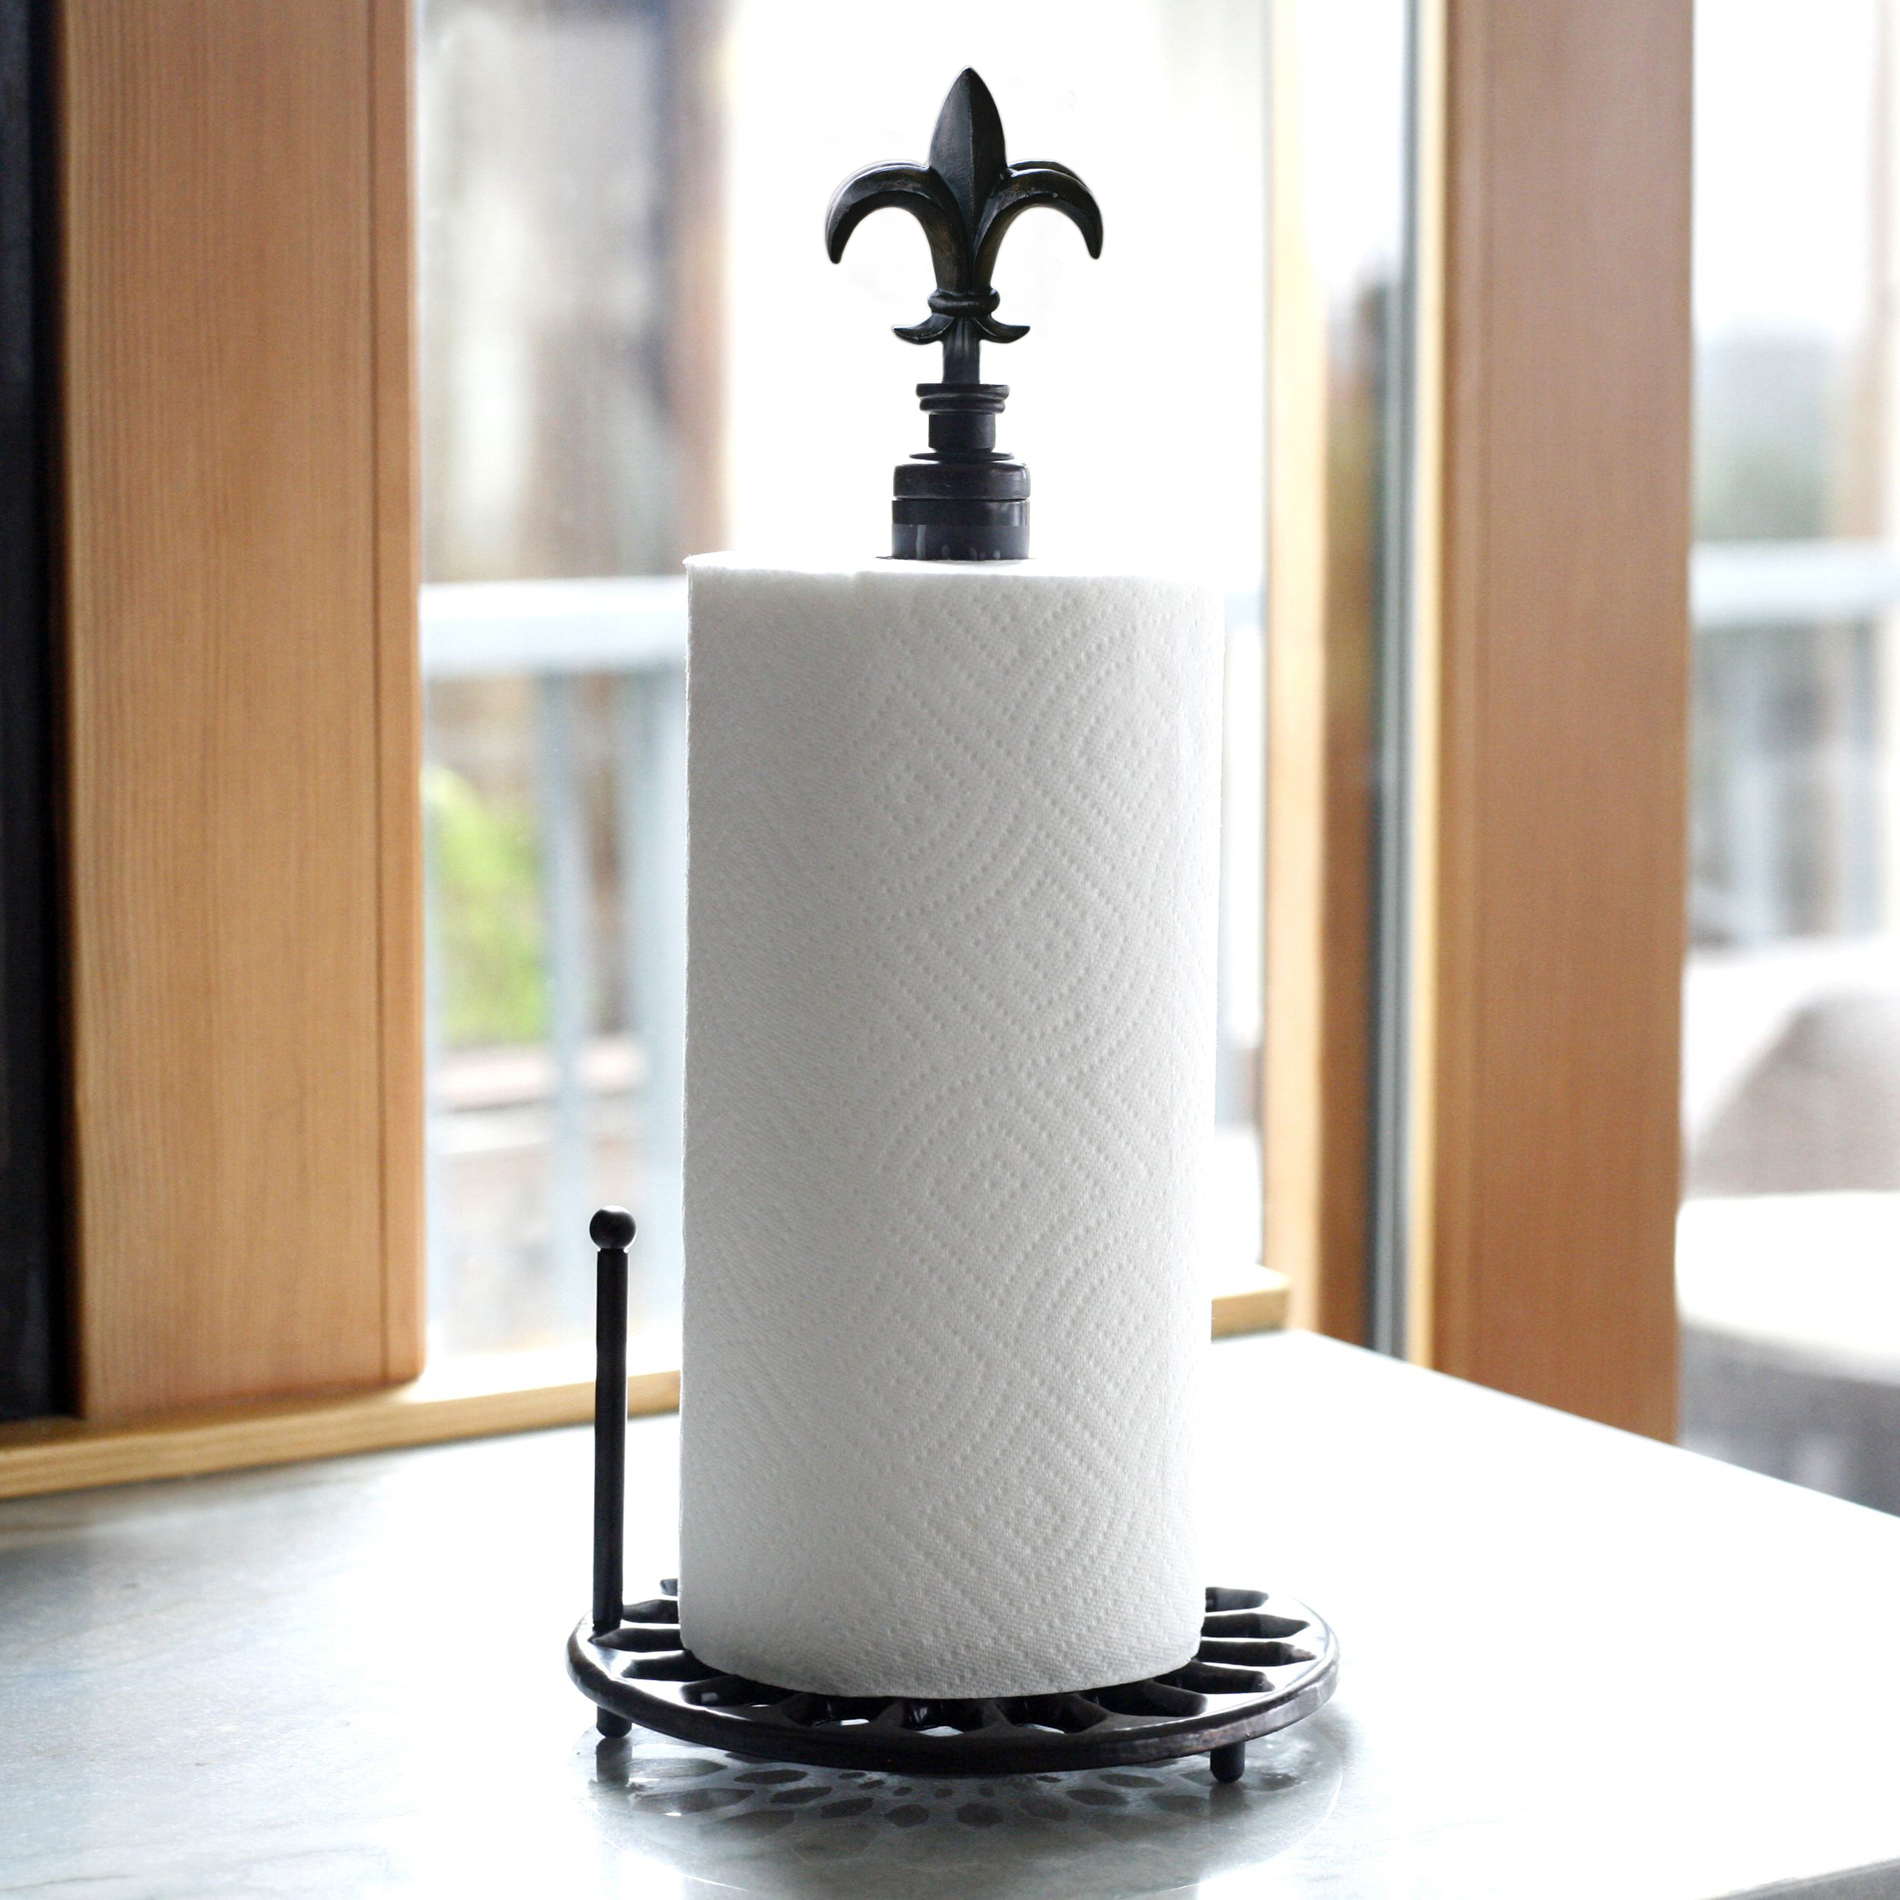 Paper Towel Holder Kmart Fleur De Lis Collection Paper Towel Holder